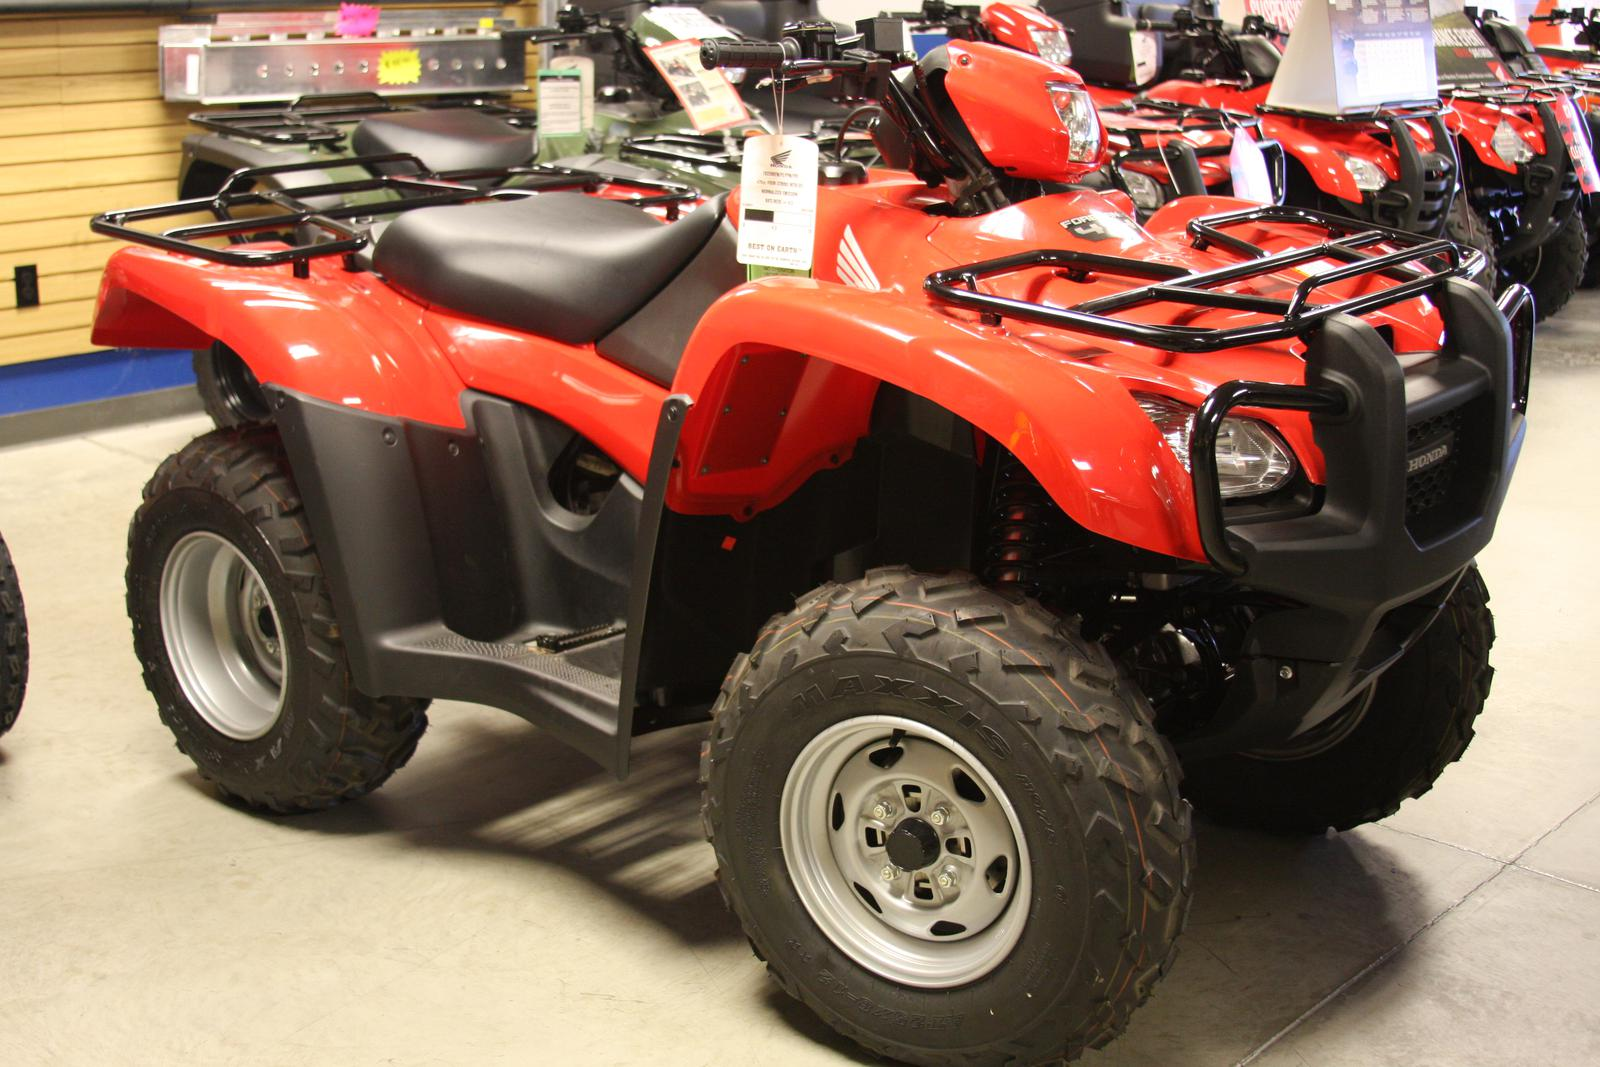 Polaris Slingshot For Sale Ebay >> 2013 Honda FOURTRAX FOREMAN 4X4 Motorcycle From YORK, PA,Today Sale $5,999 - MotorcycleForSales.com